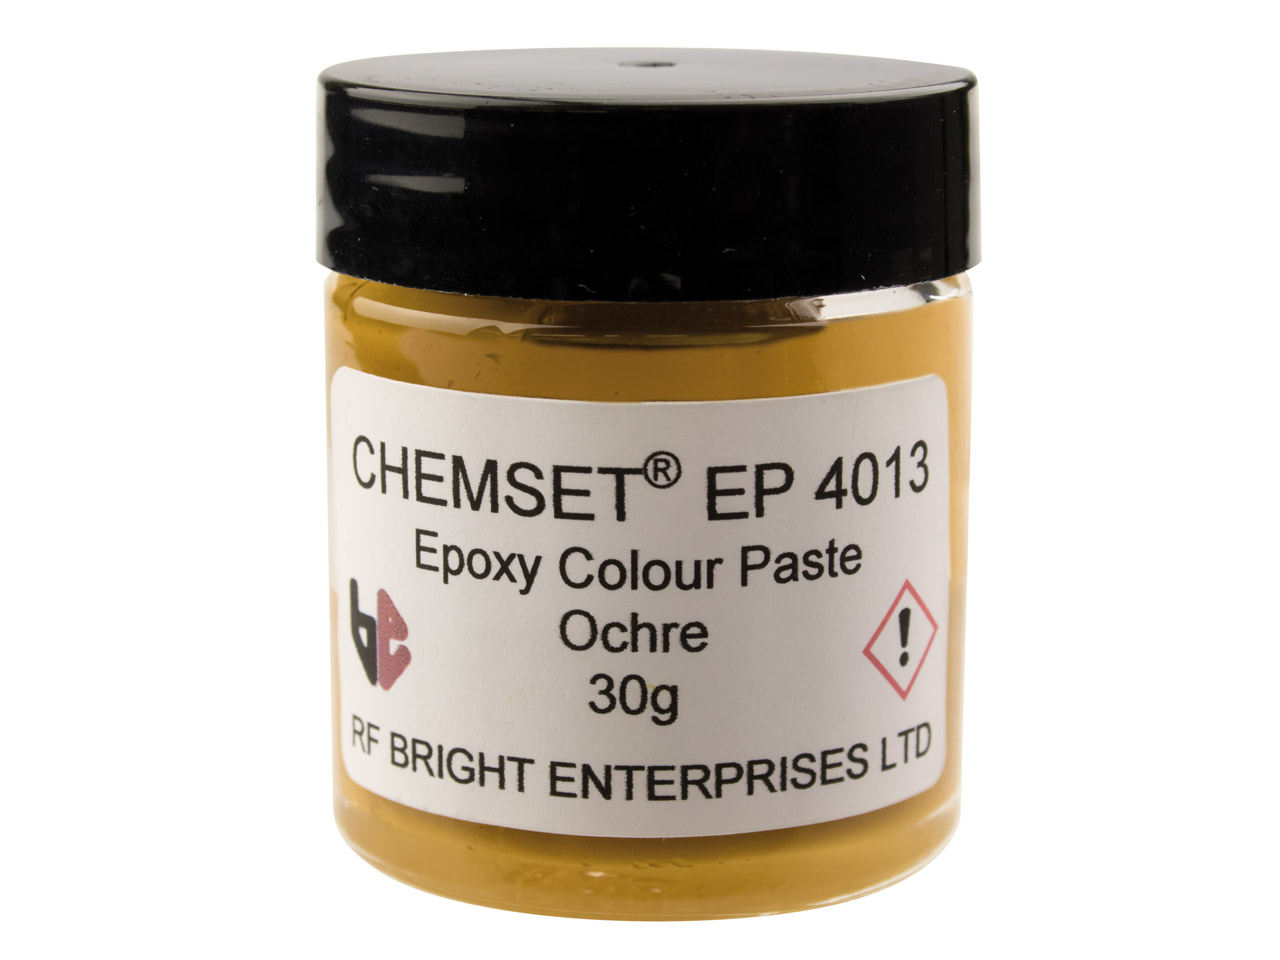 Epoxy Enamel Opaque, Ochre, 30g    Paste